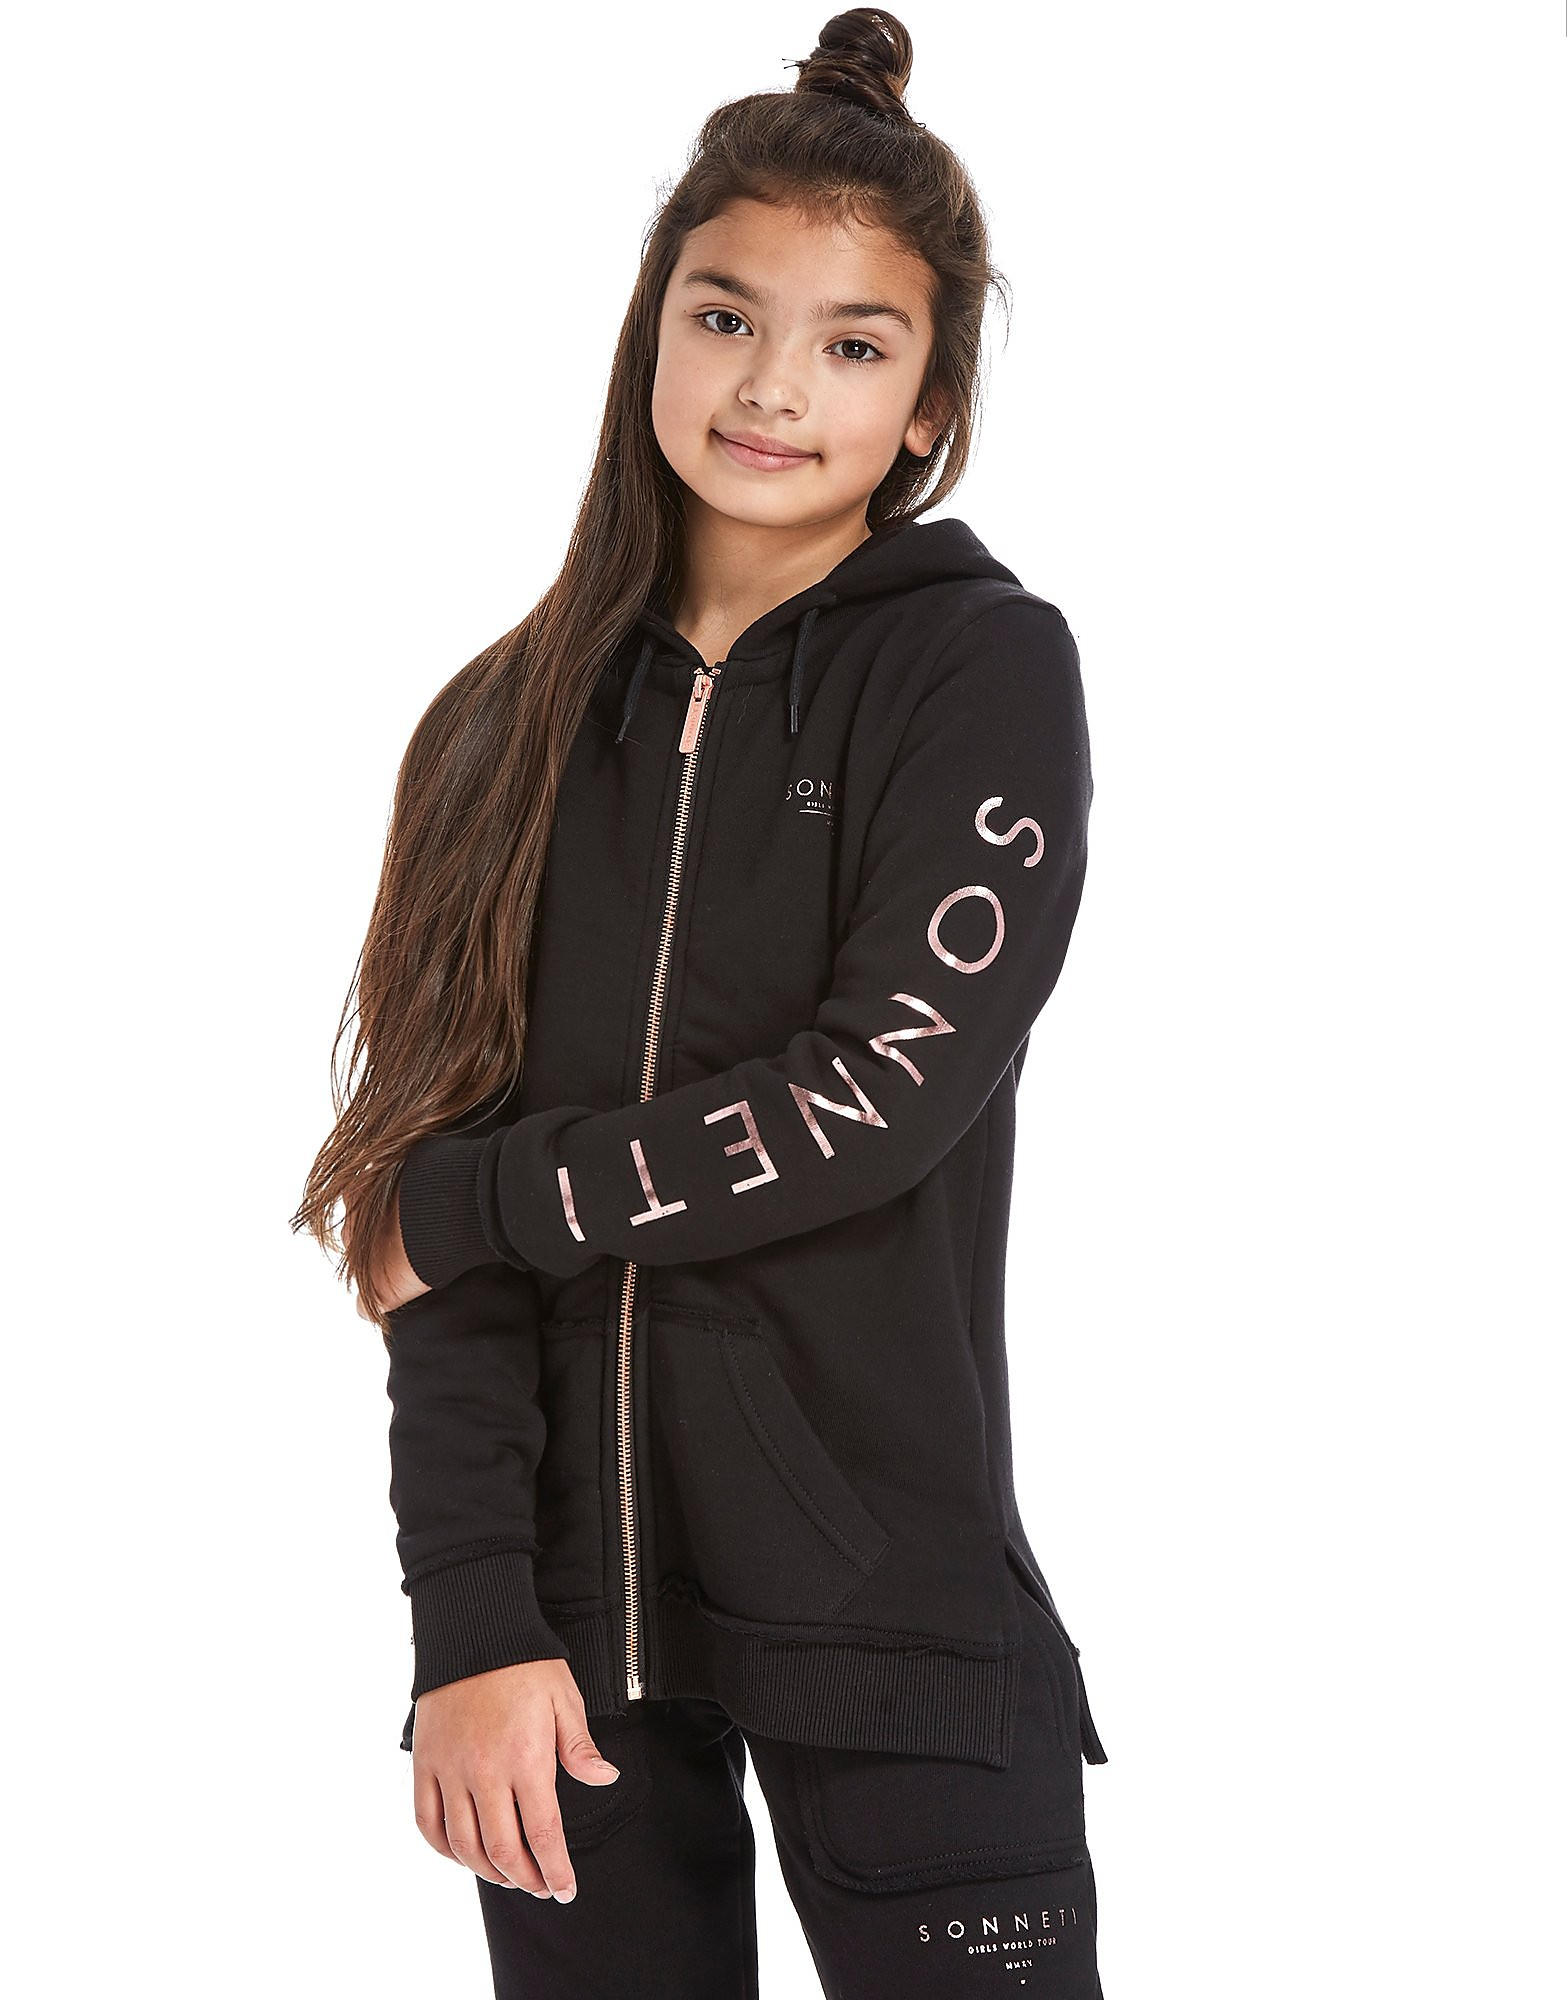 Sonneti Girls' Raw Zip Through Hoodie Junior